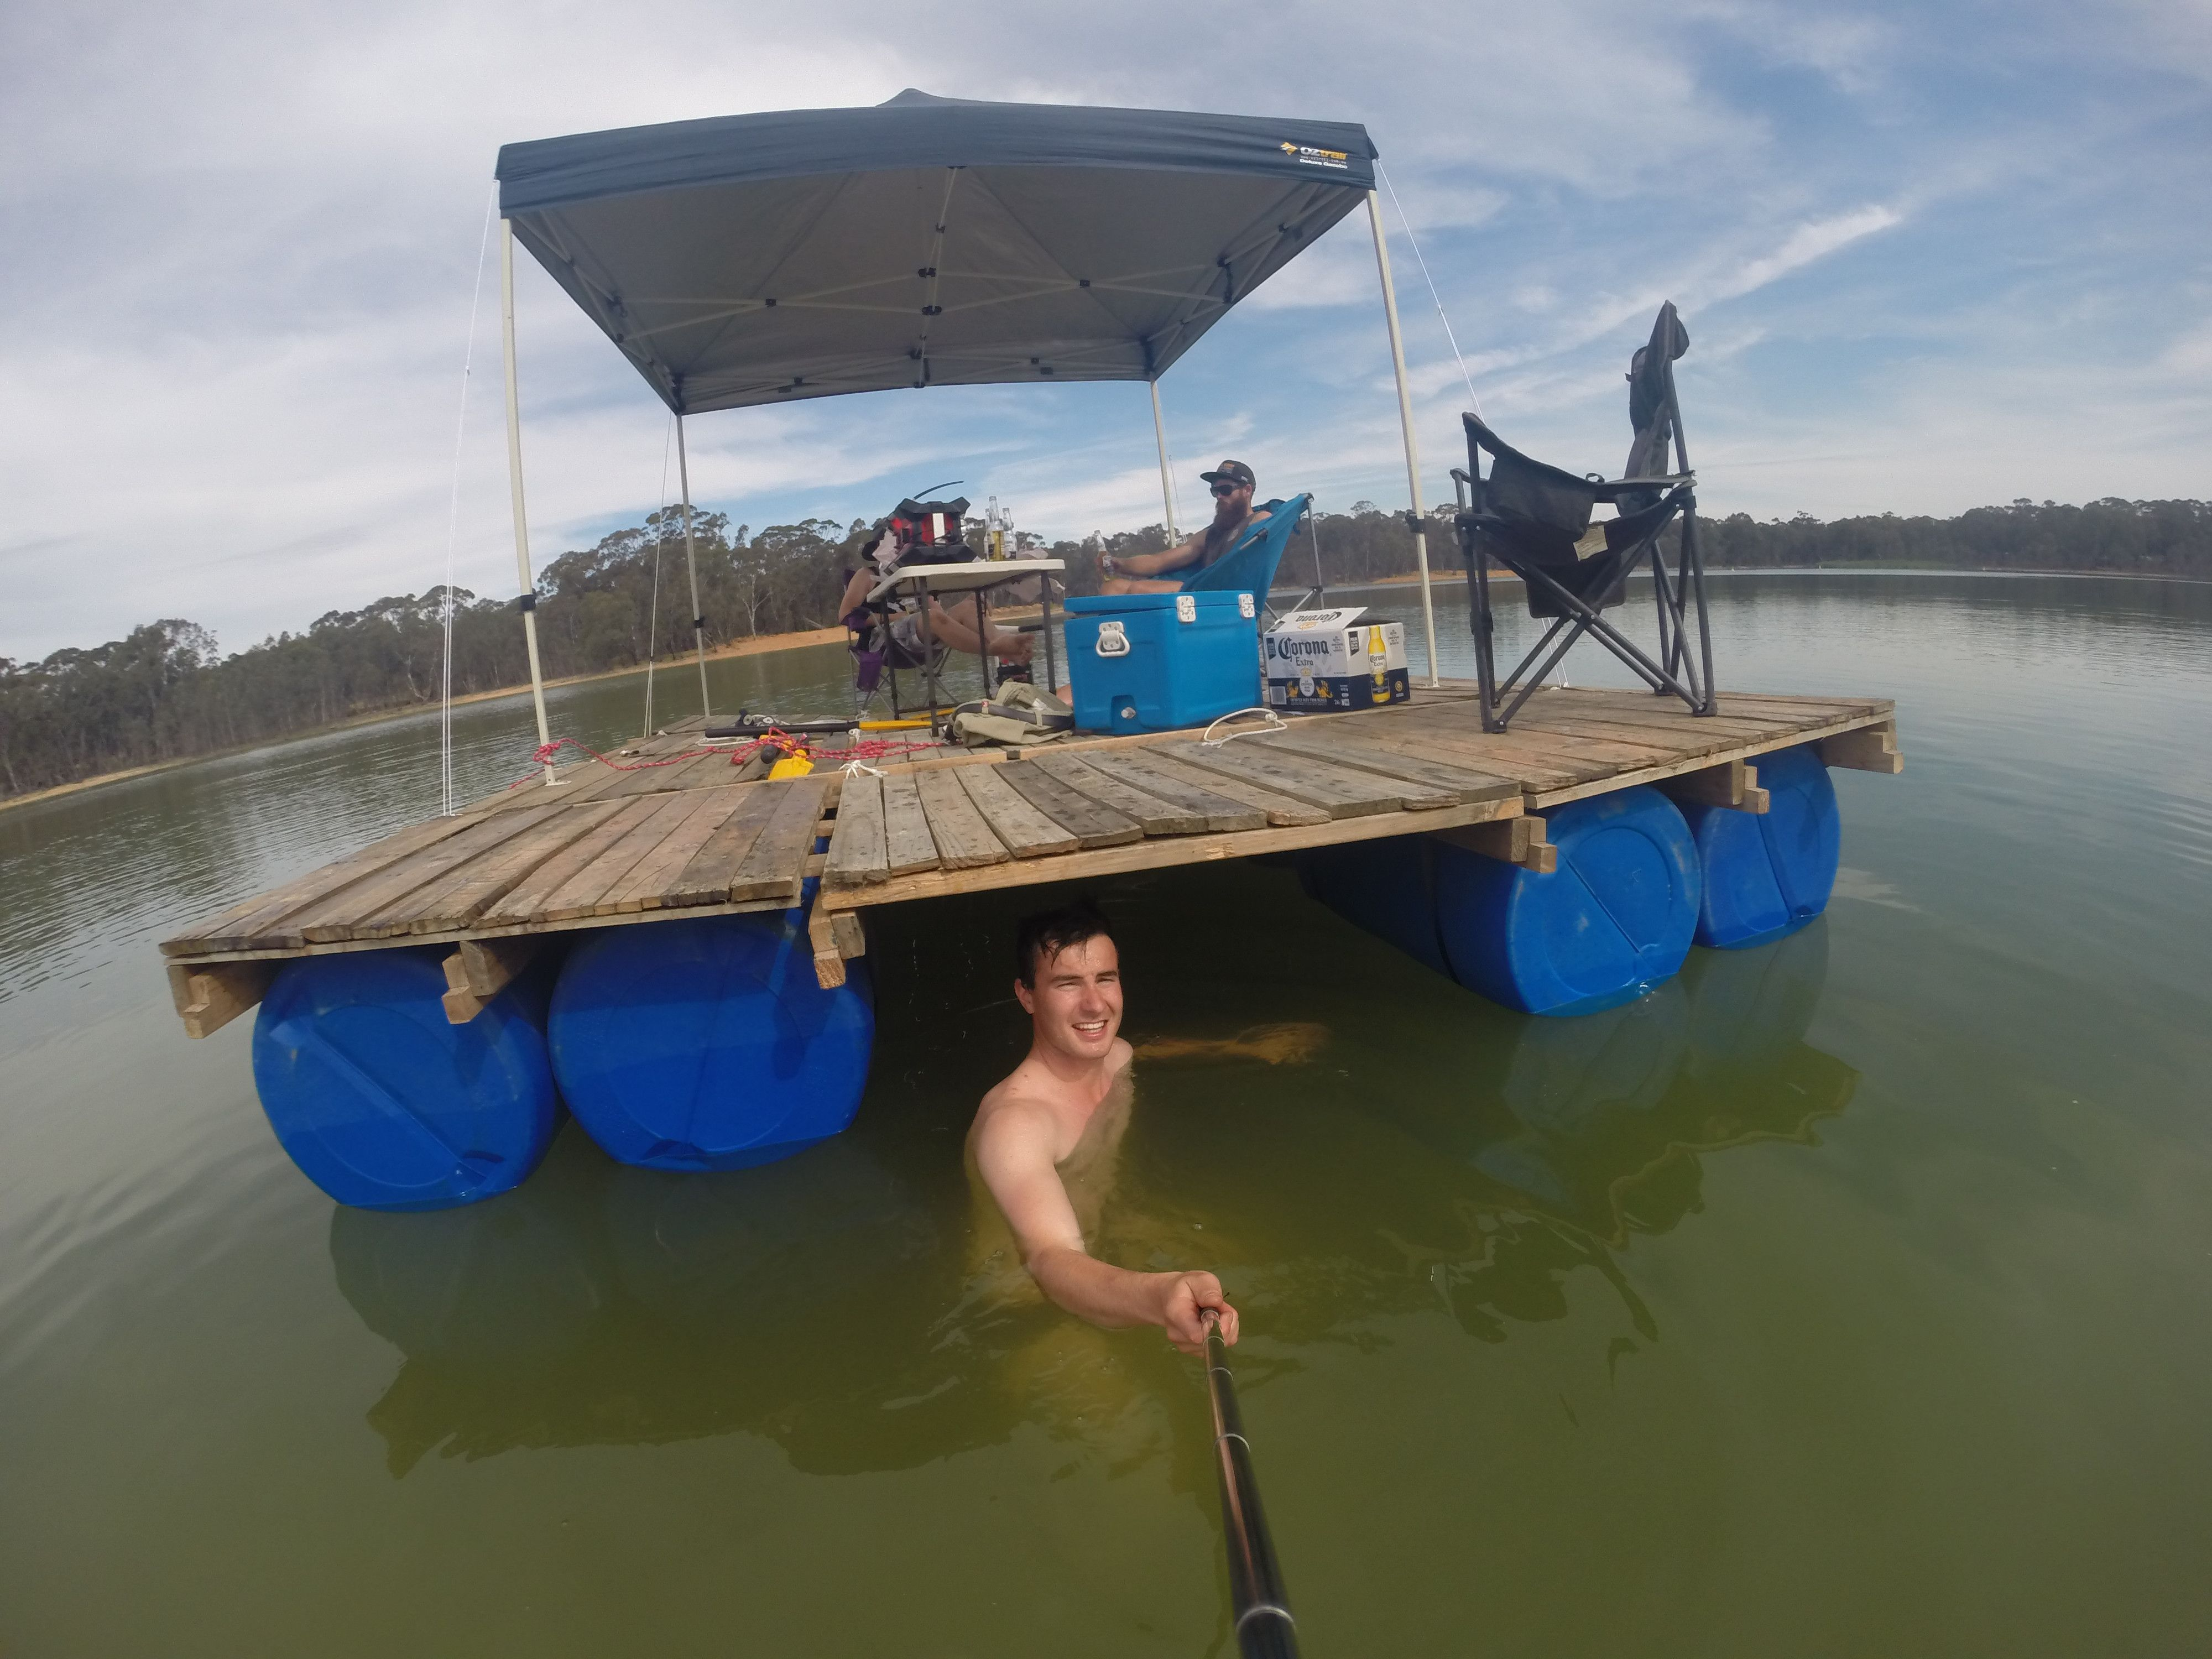 Diy portable pontoon using old pallets and old blue drums for Pallet boat plans